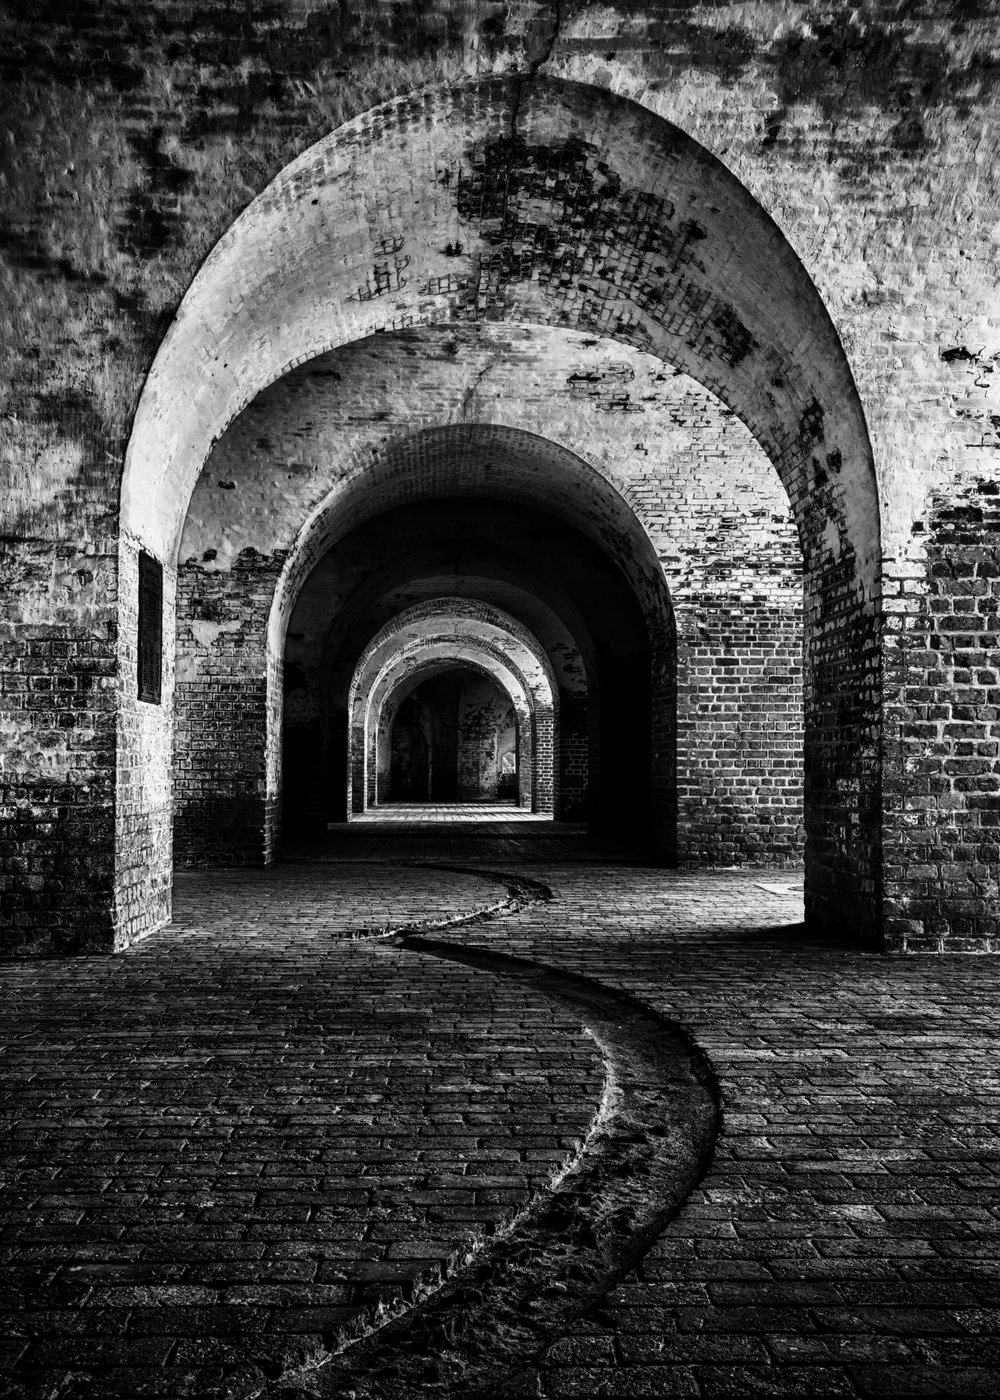 """Fort Repitition"" was photographed at  Fort Pulaski National Monument  in Savannah GA."